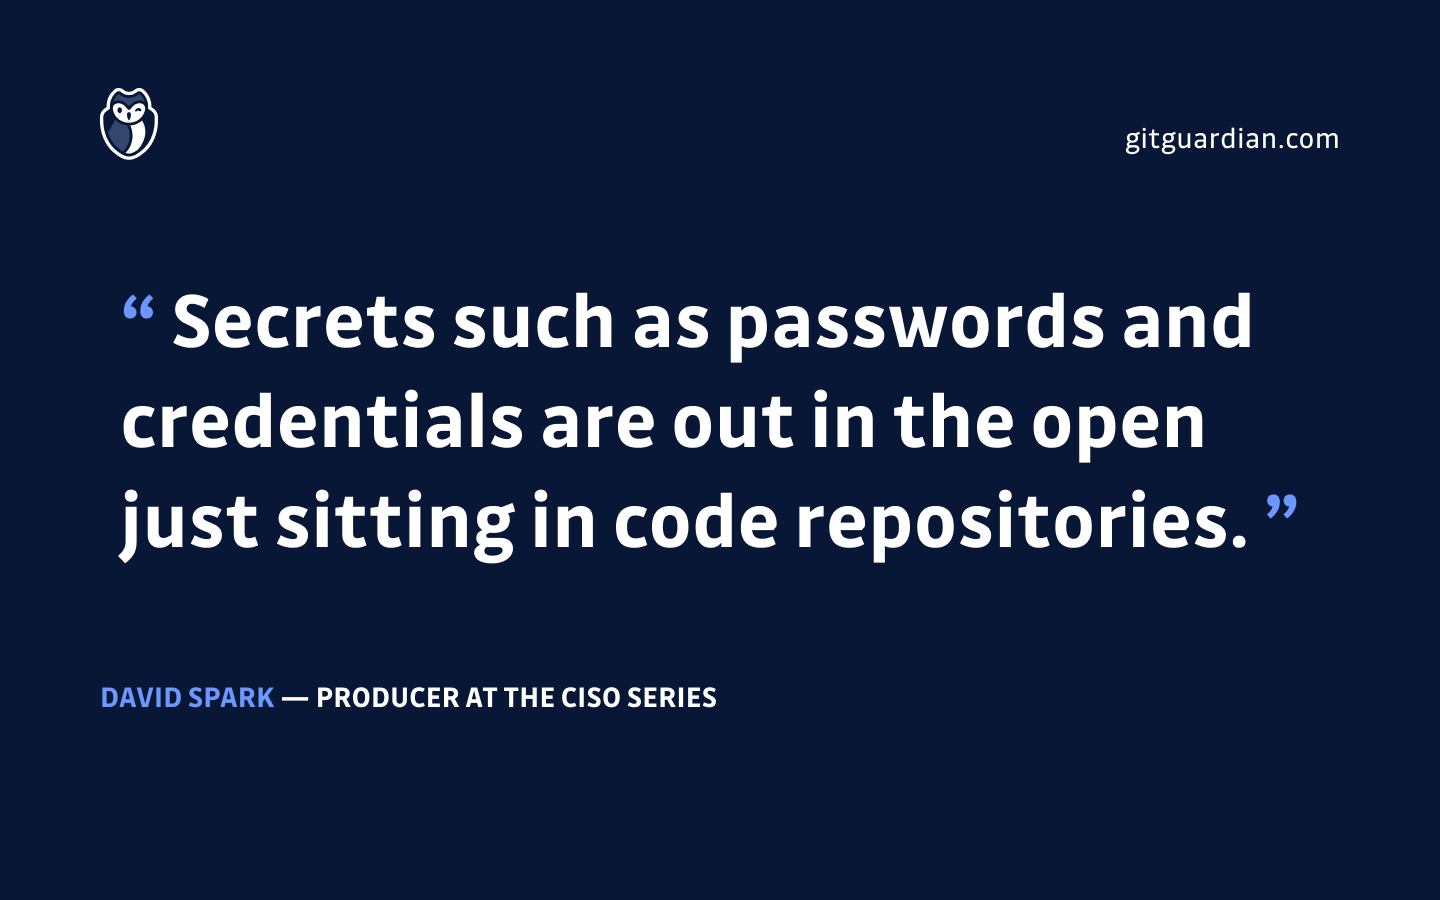 The threat of leaked secrets in git repositories - A discussion between security experts